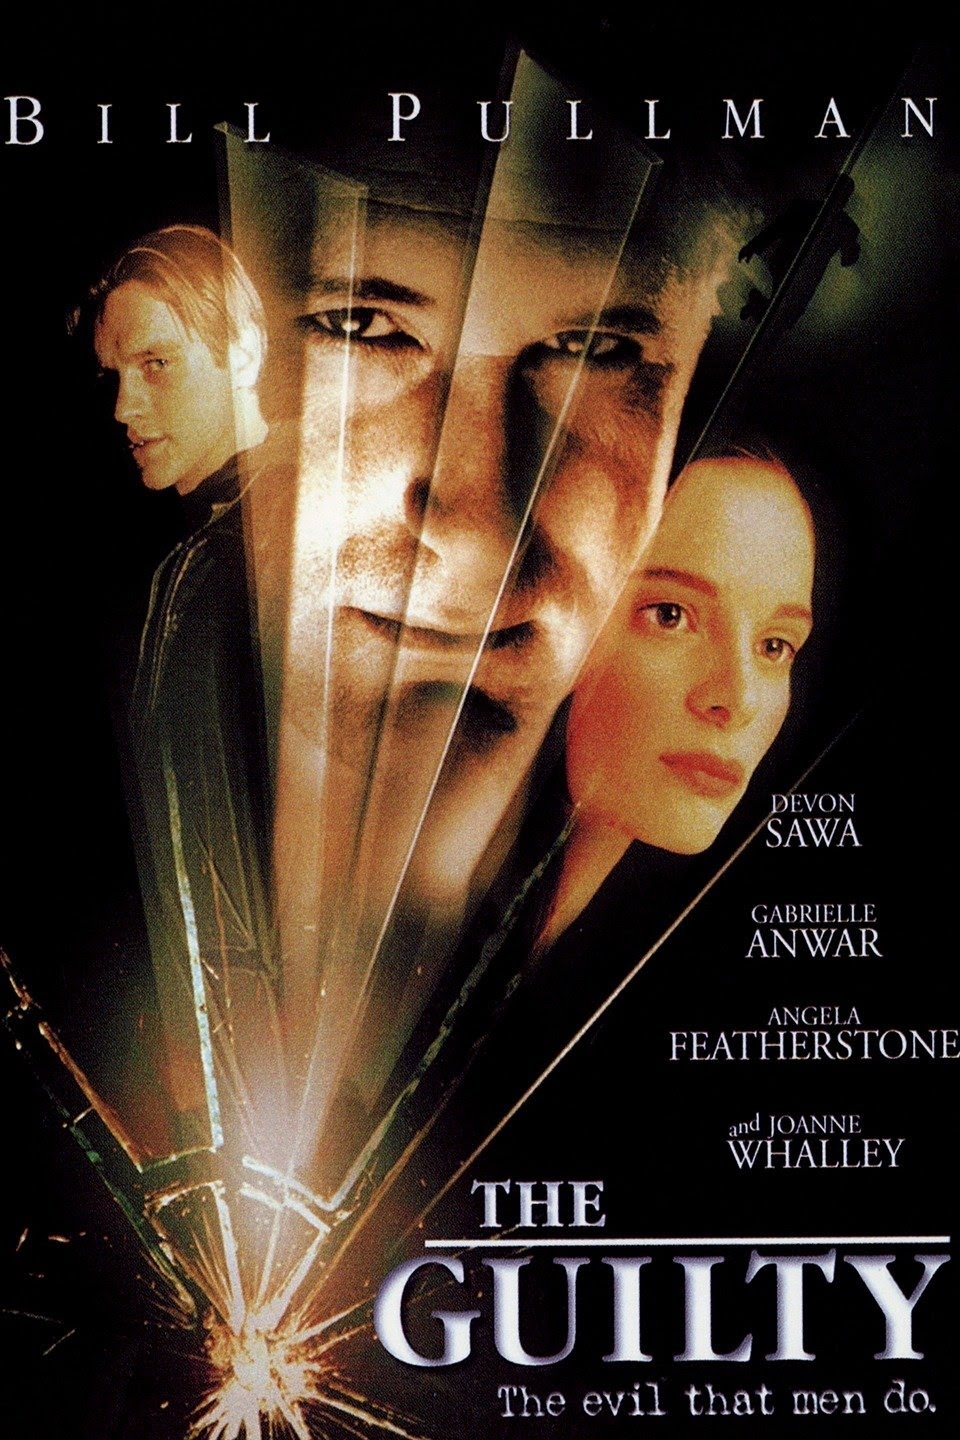 The Guilty (2000)